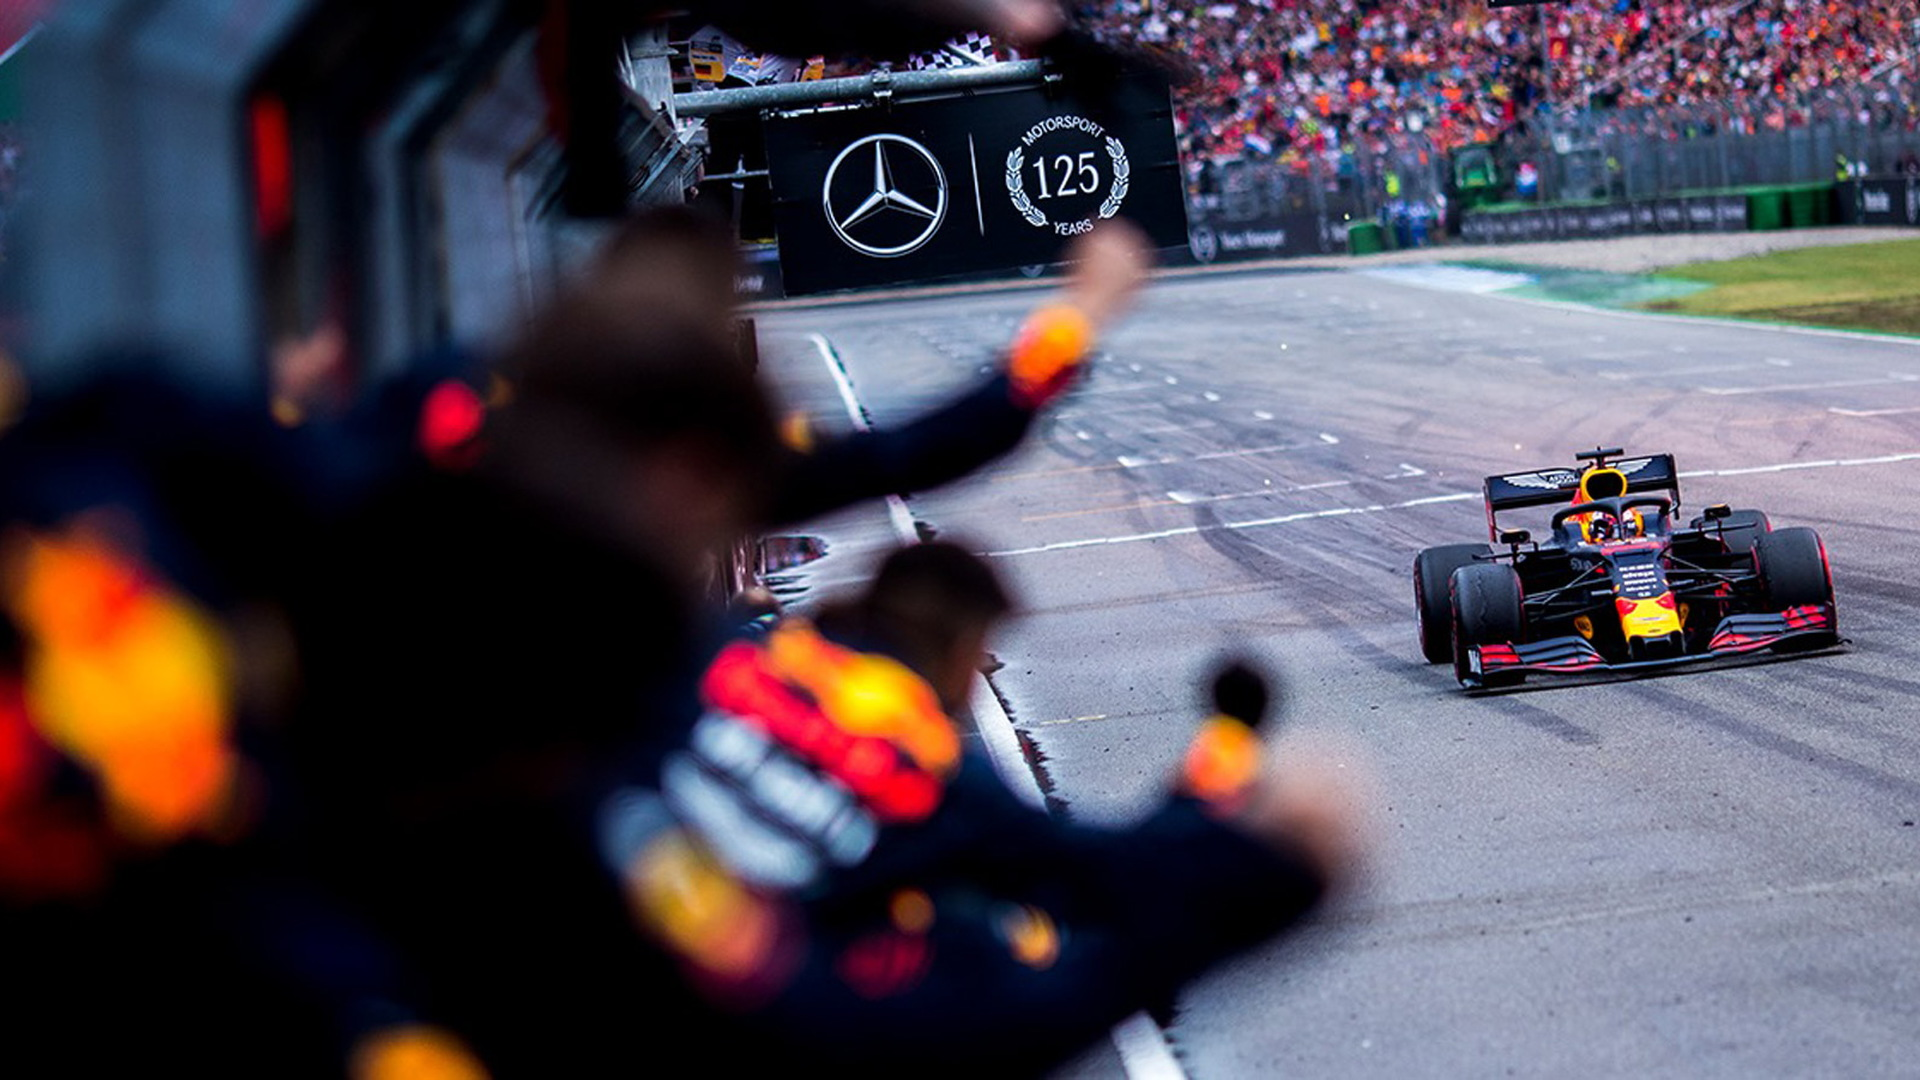 Aston Martin Red Bull Racing's Max Verstappen at the 2019 Formula One German Grand Prix